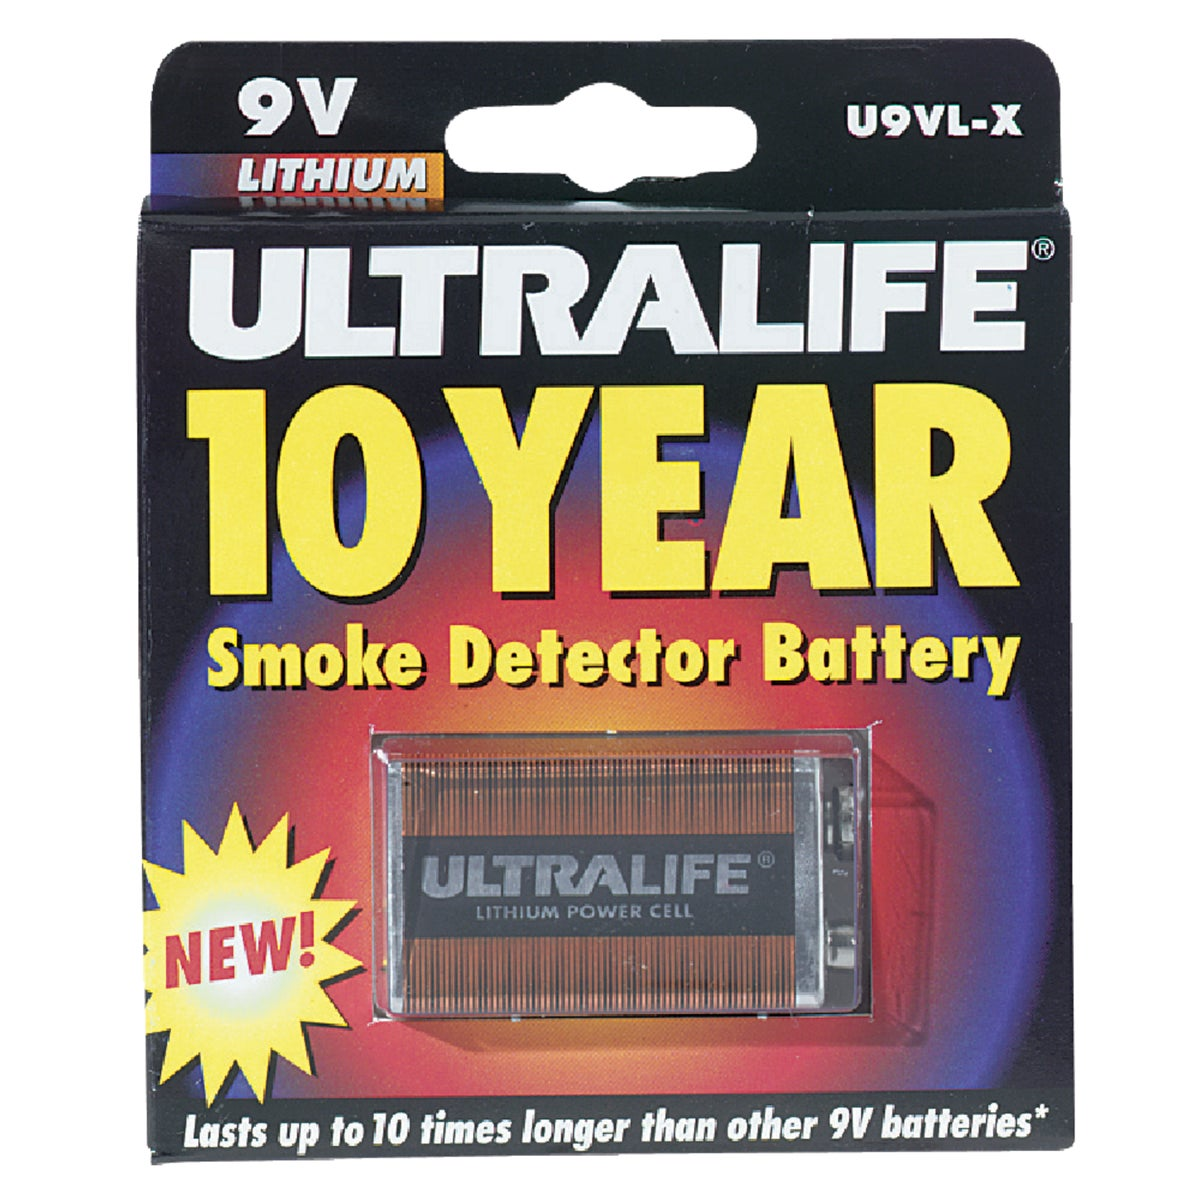 9V LITHIUM BATTERY - U9VLJPX by Ultralife Batteries